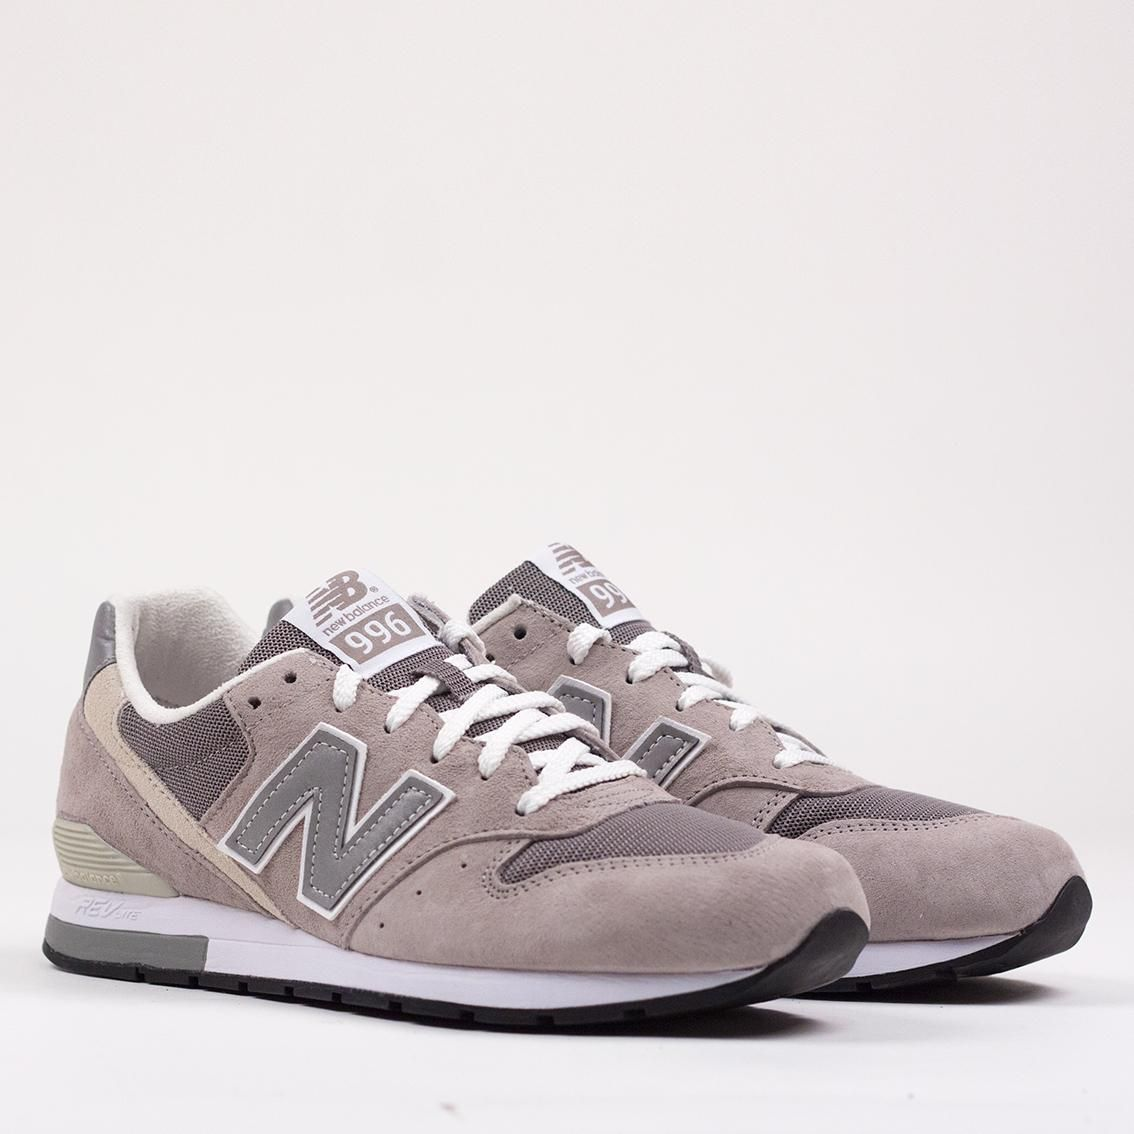 New Balance 996 Grey Suede MRL996AG